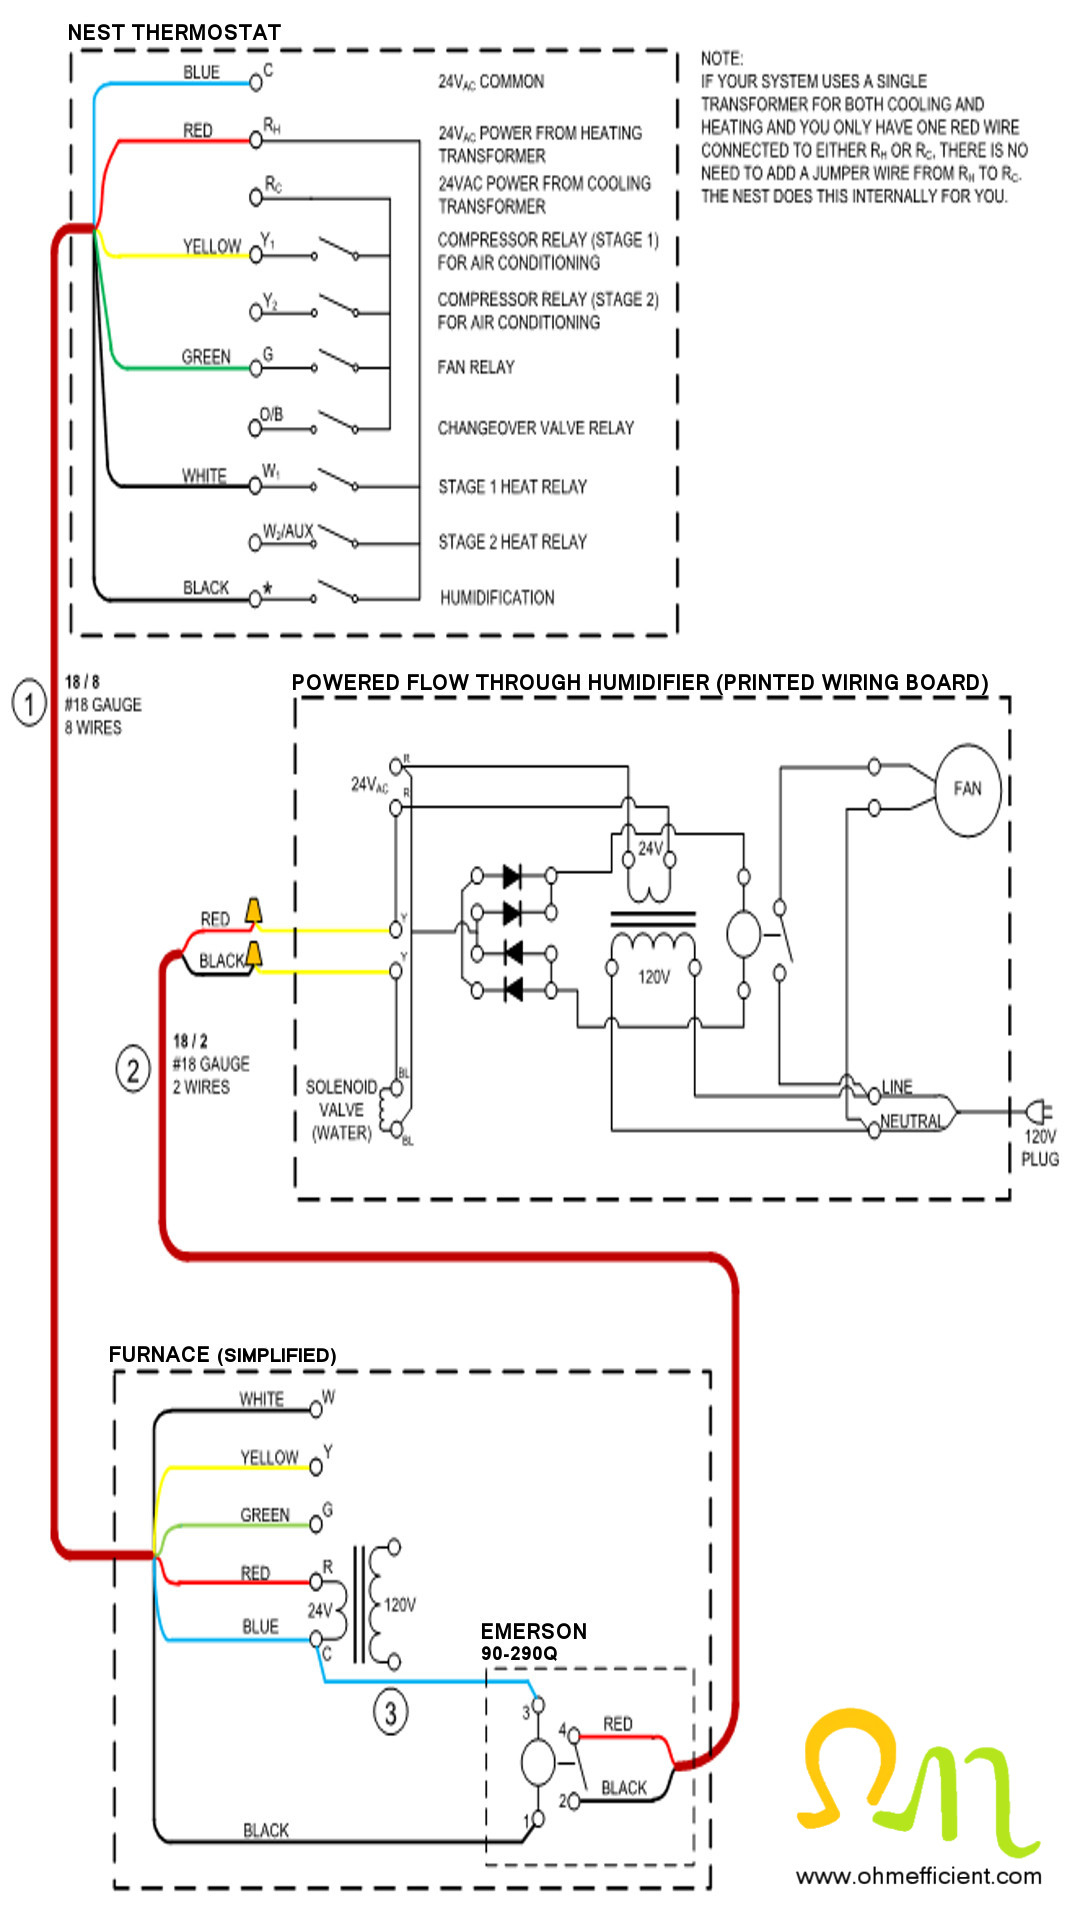 Awesome Humidifier Schematics For Wiring Wiring Diagram Wiring Cloud Hisonuggs Outletorg